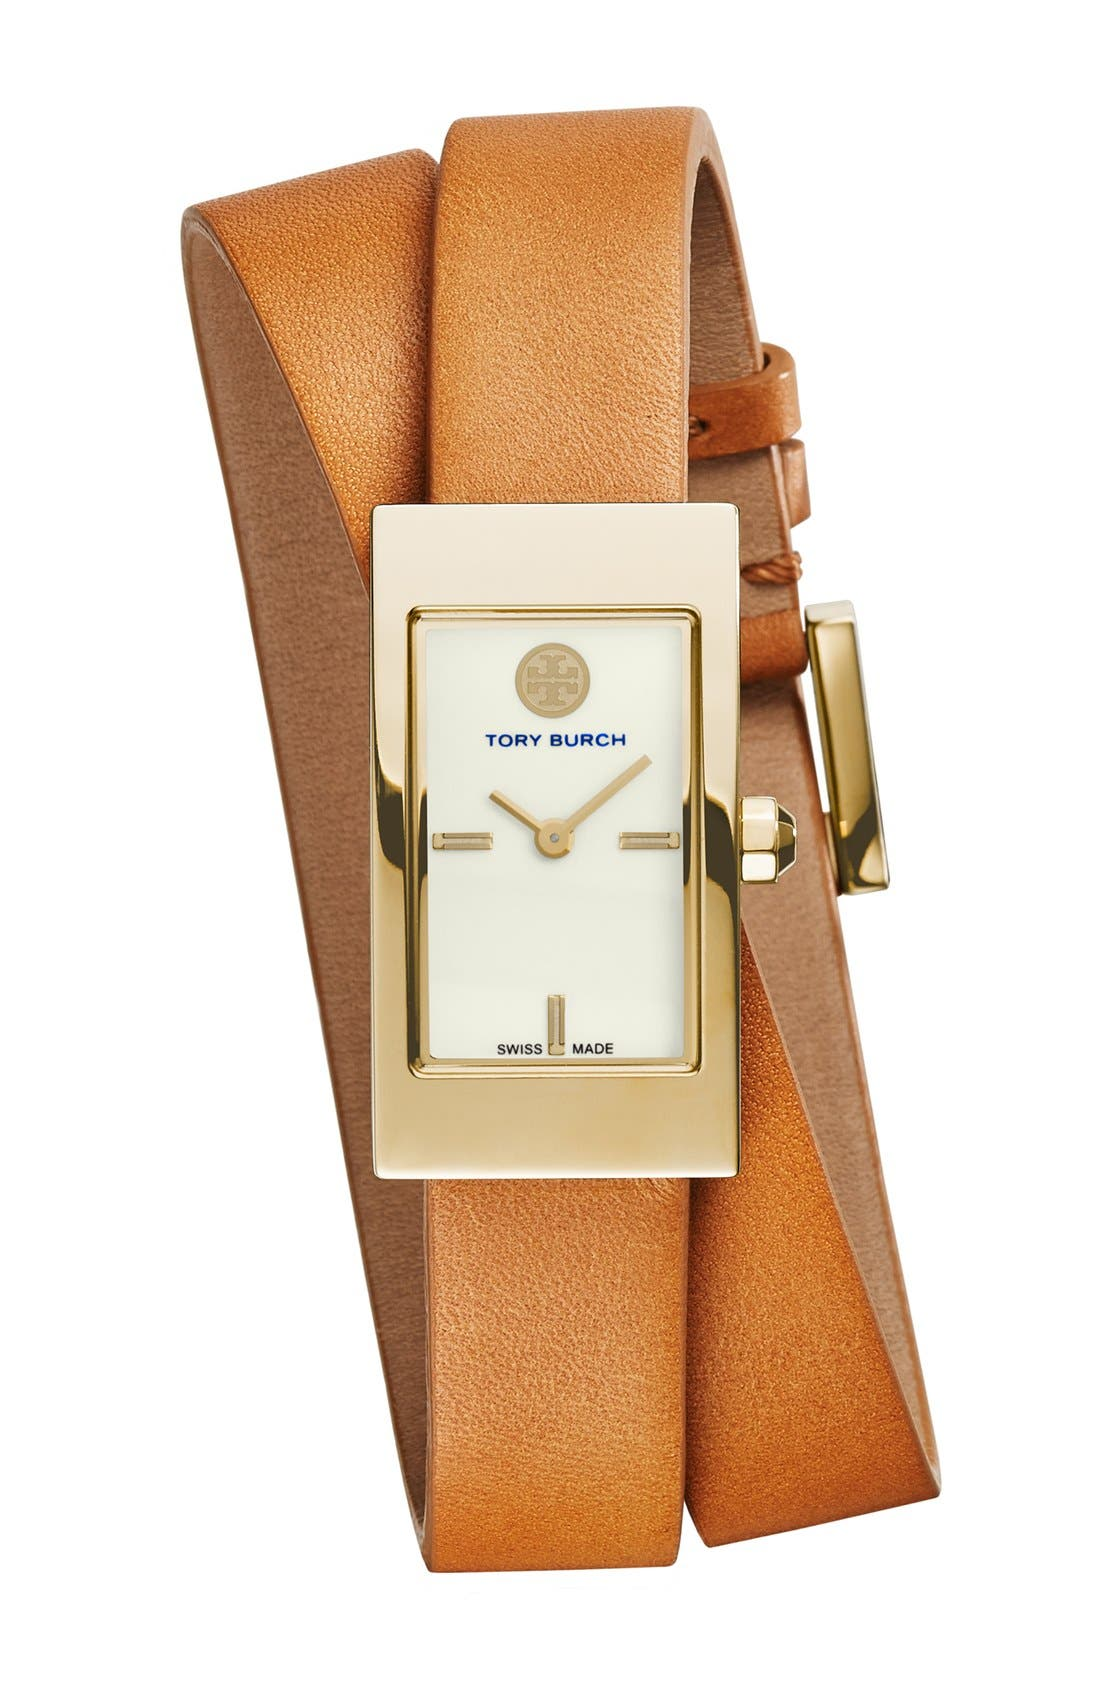 Main Image - Tory Burch 'Buddy Signature' Rectangular Wrap Leather Strap Watch, 17mm x 31mm